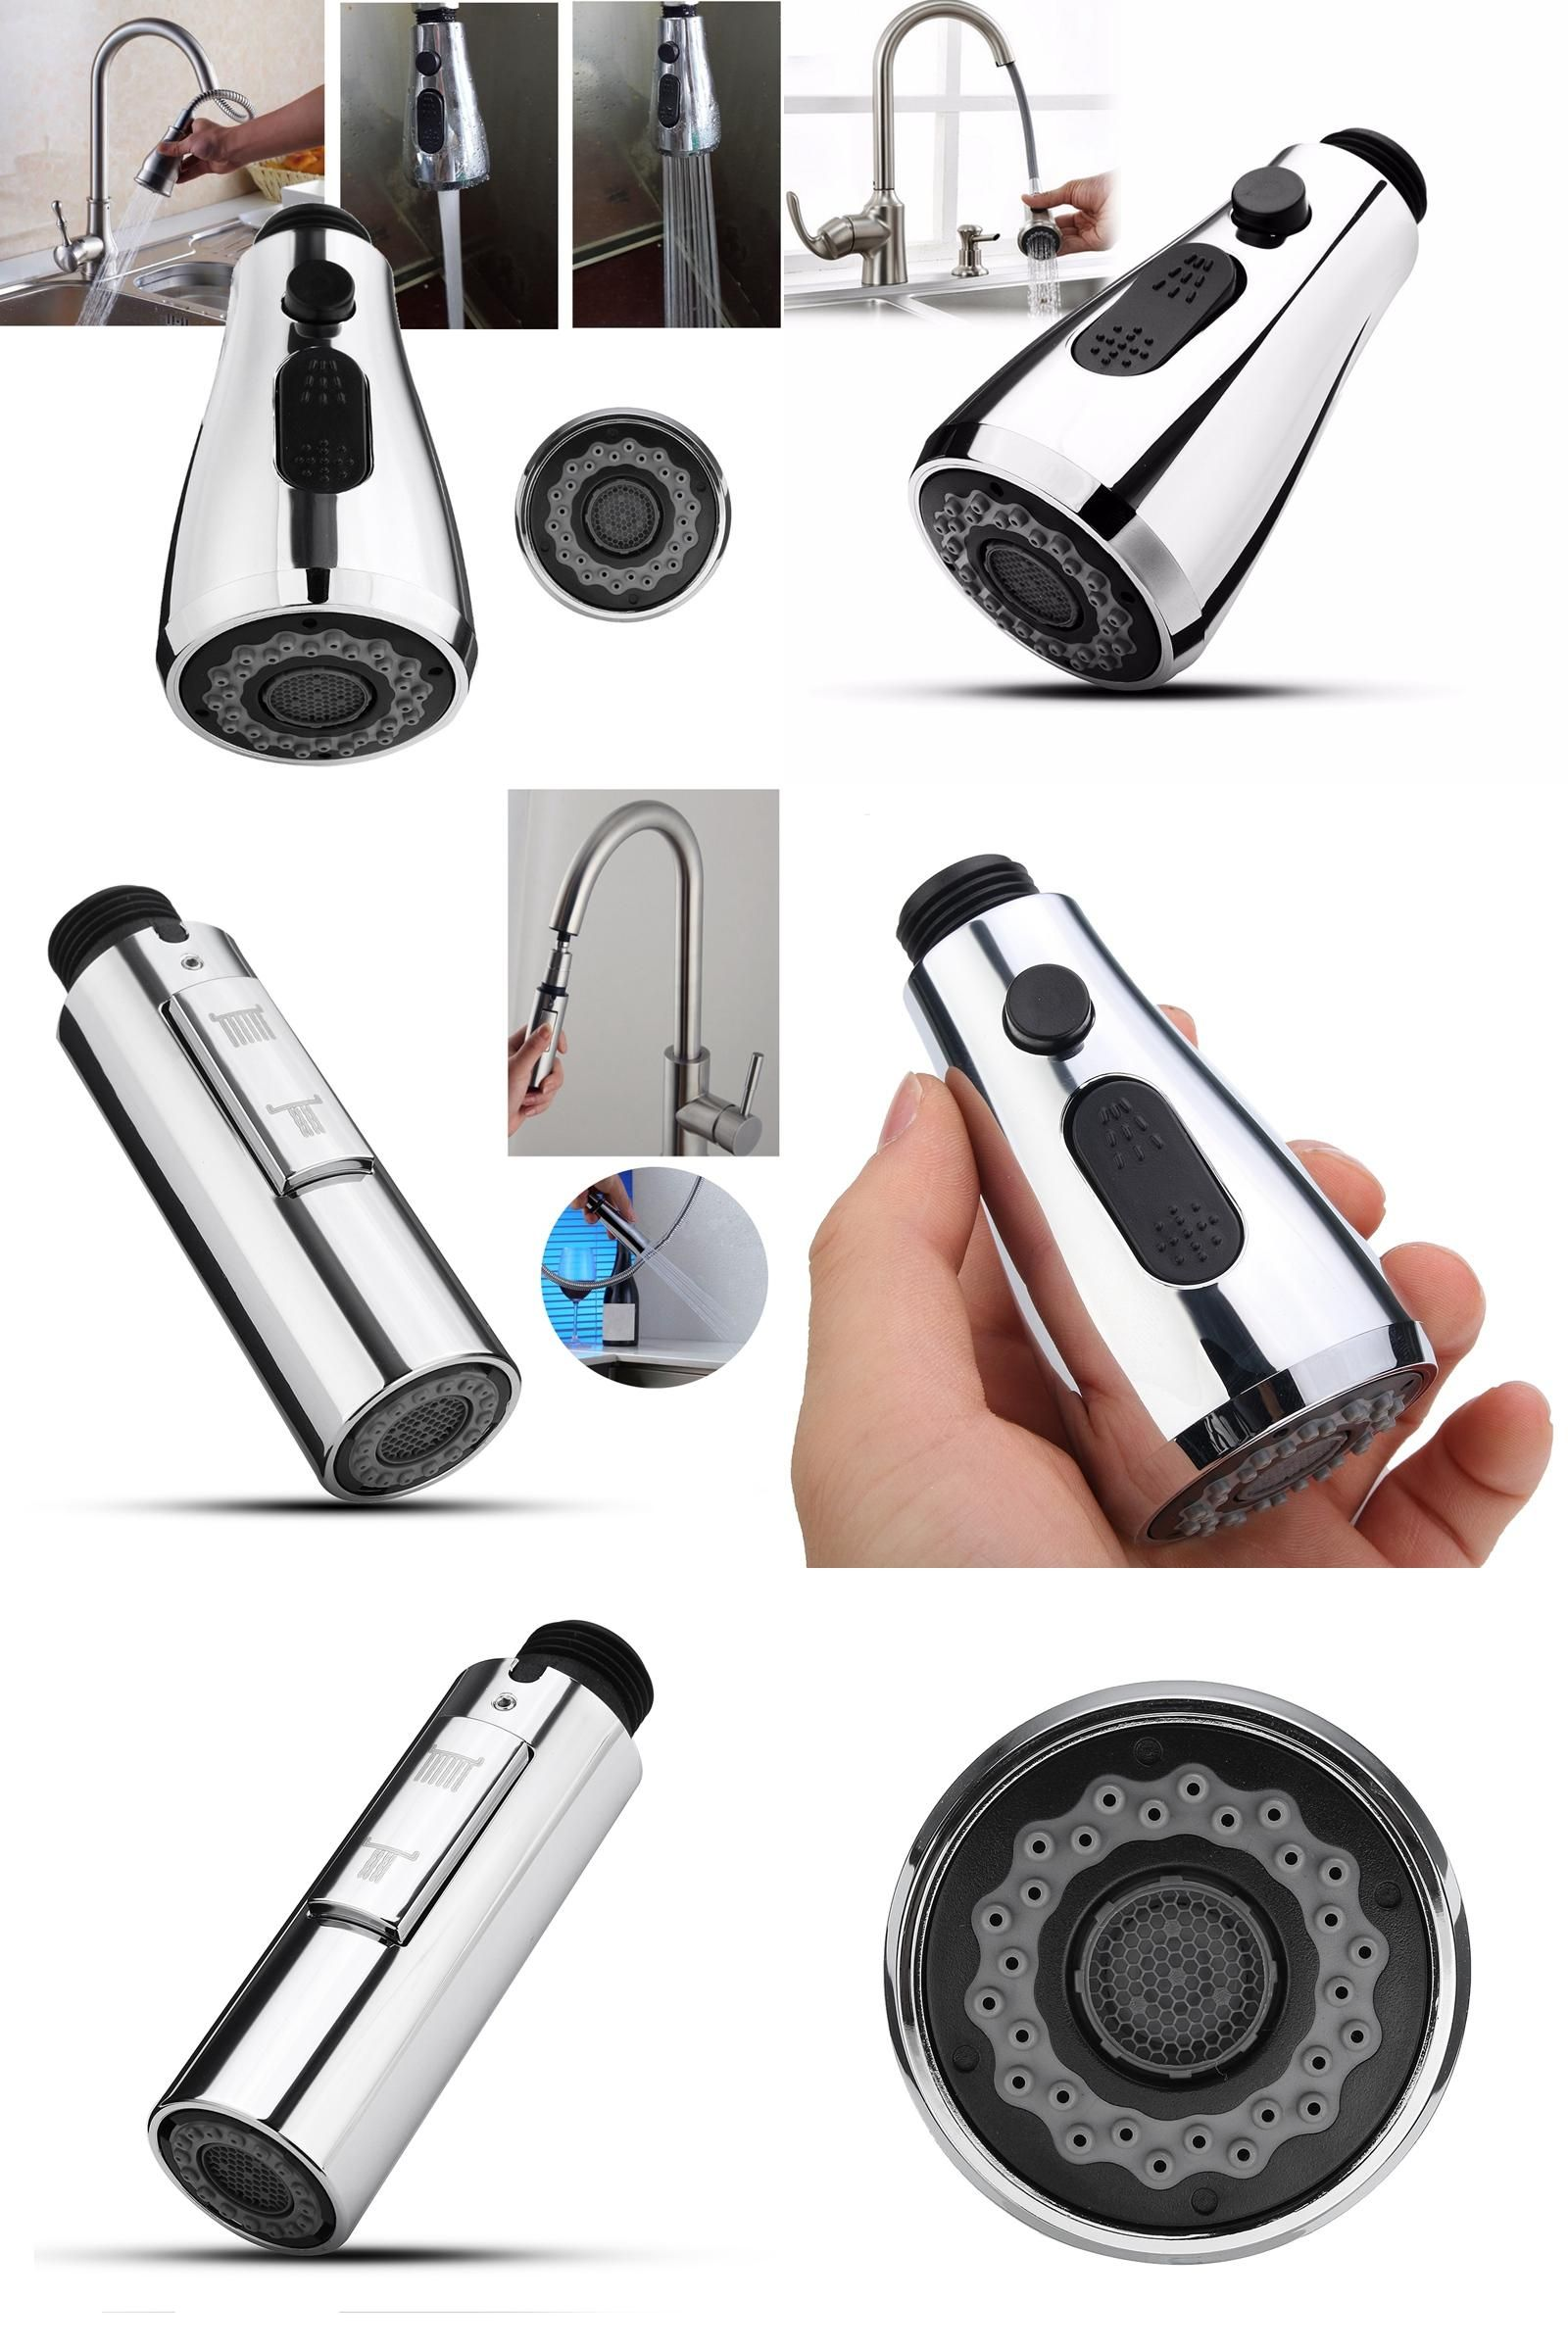 Visit to Buy] Pull Out Down Kitchen Faucet Spray Nozzle 360 Swivel ...